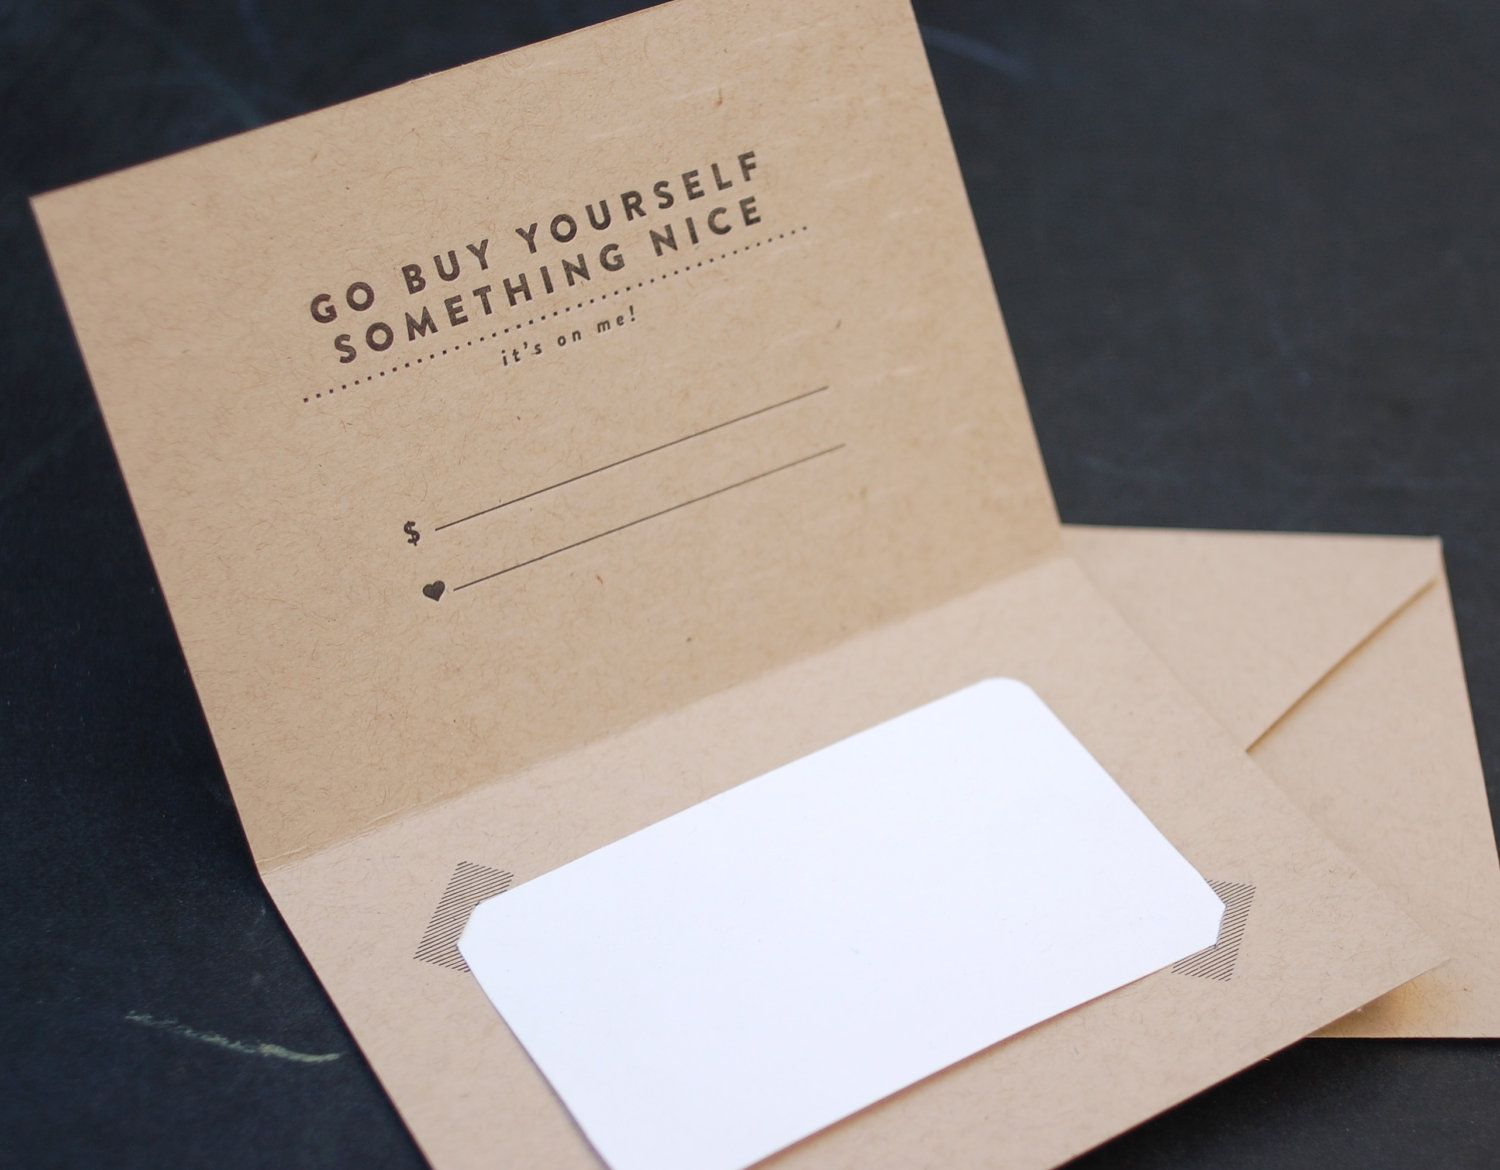 Letterpress Gift Certificate Card | Paper Things | Pinterest ...